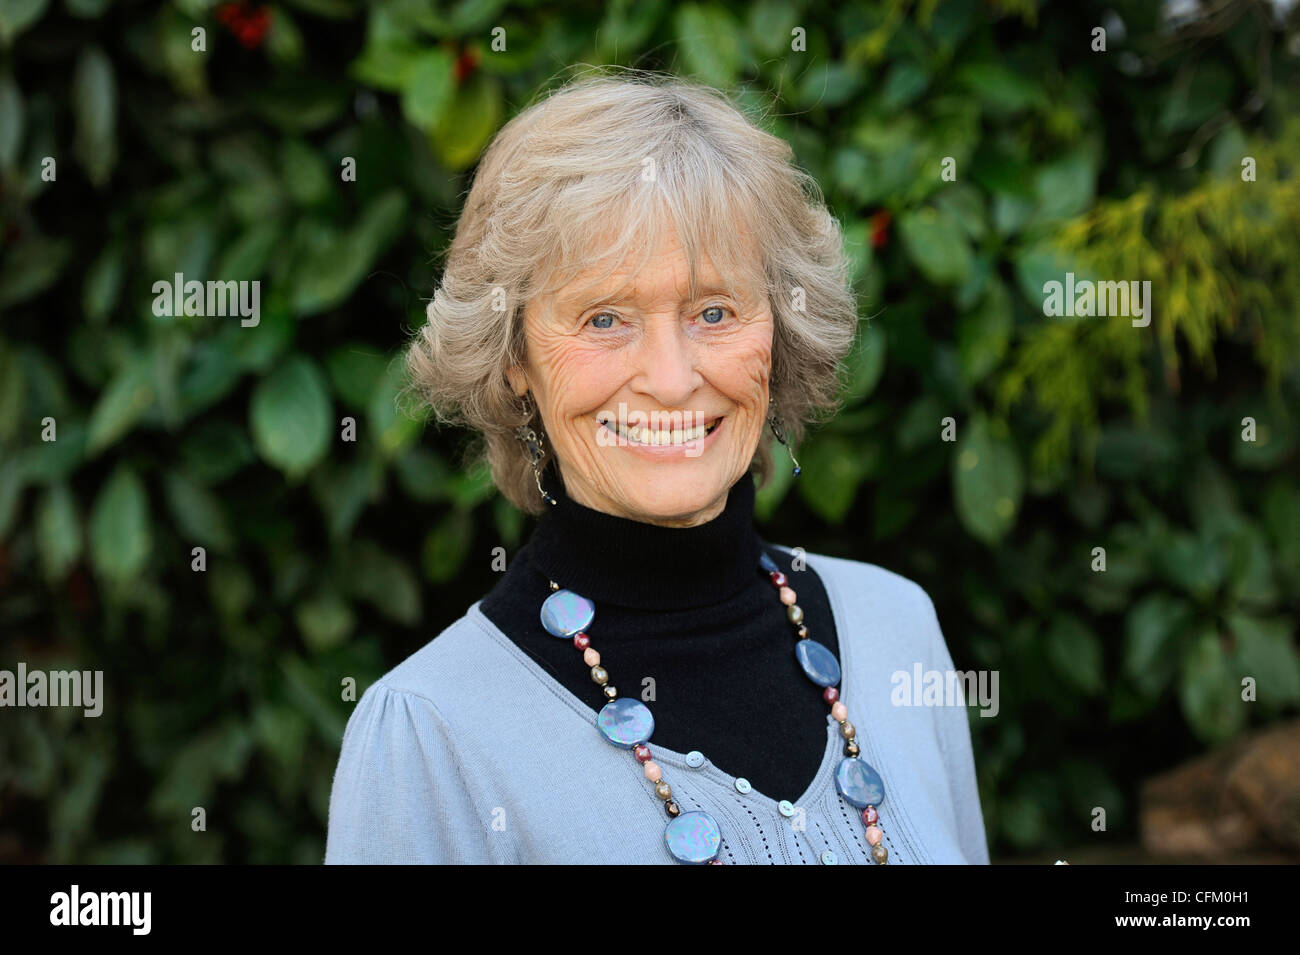 Virginia McKenna naked (42 foto and video), Topless, Cleavage, Boobs, legs 2017